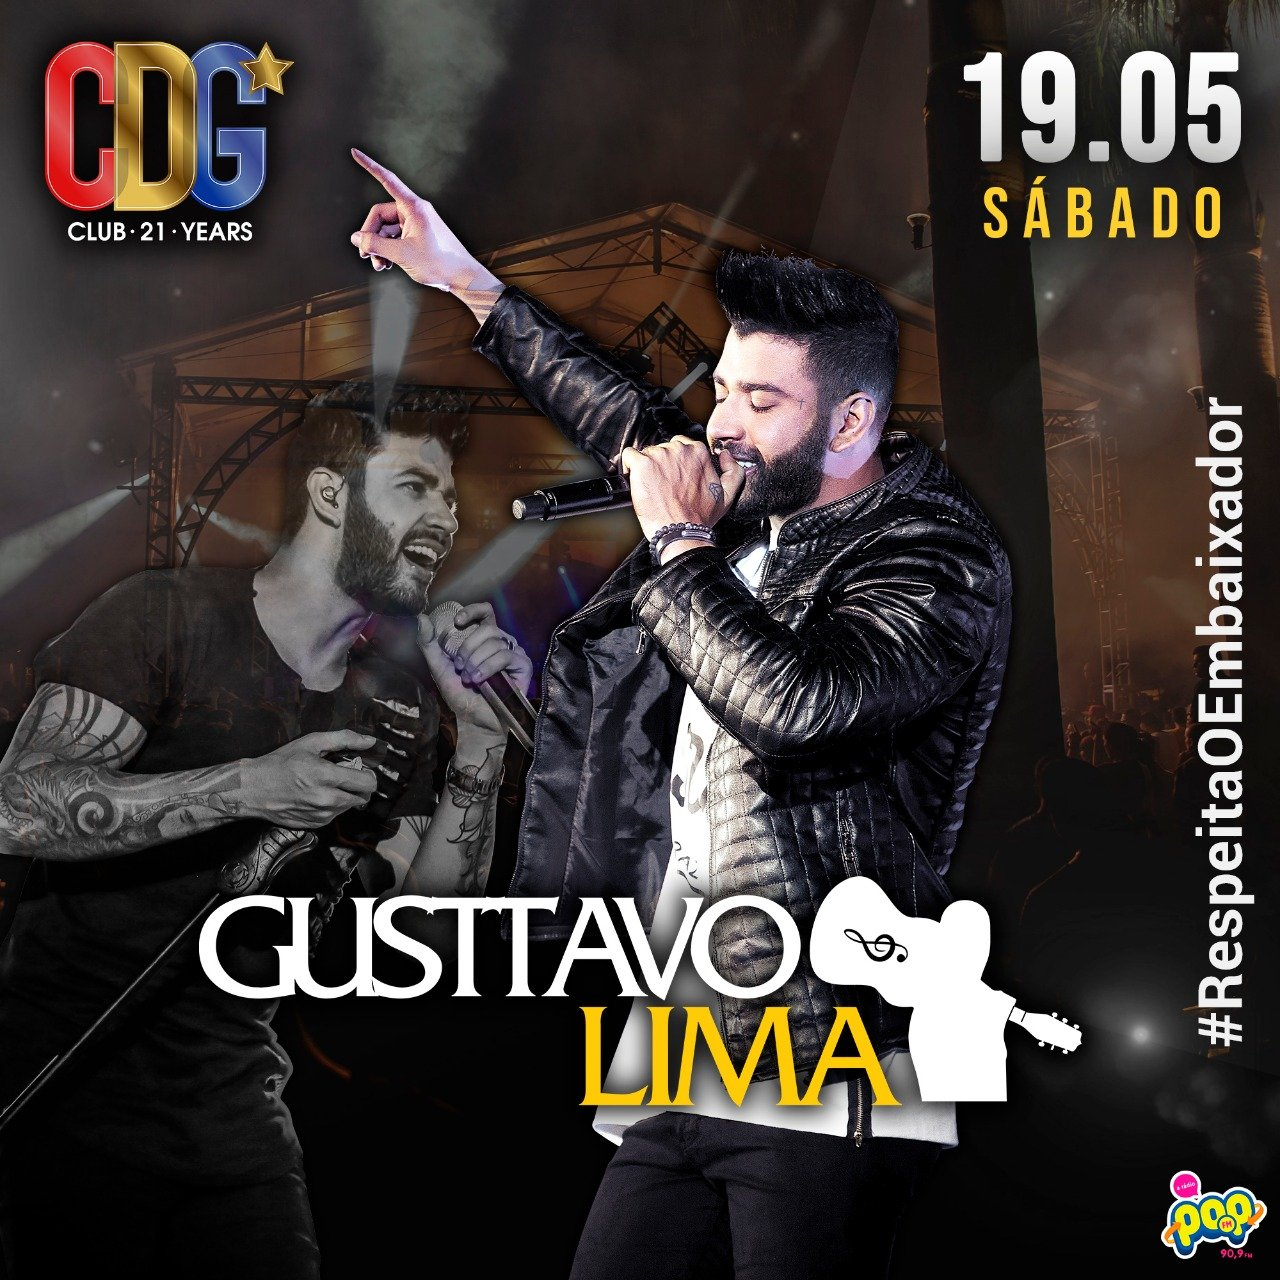 Gusttavo Lima - Cervejaria do Gordo - 19/05/18 - Lorena - SP